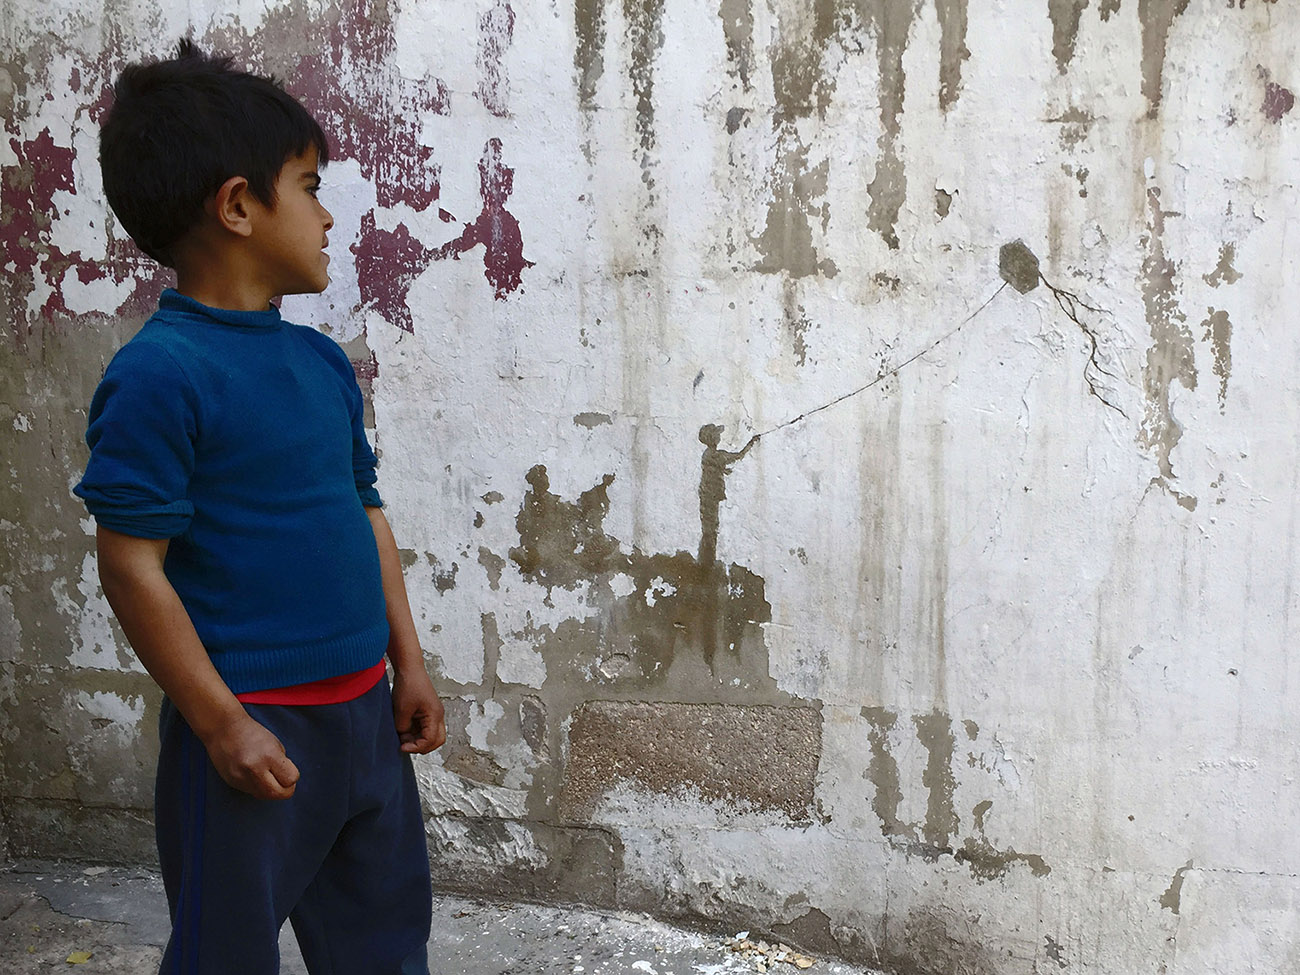 Street Art by Pejac - In Al-Hussein, a Palestinian refugee camp in Amman Jordan